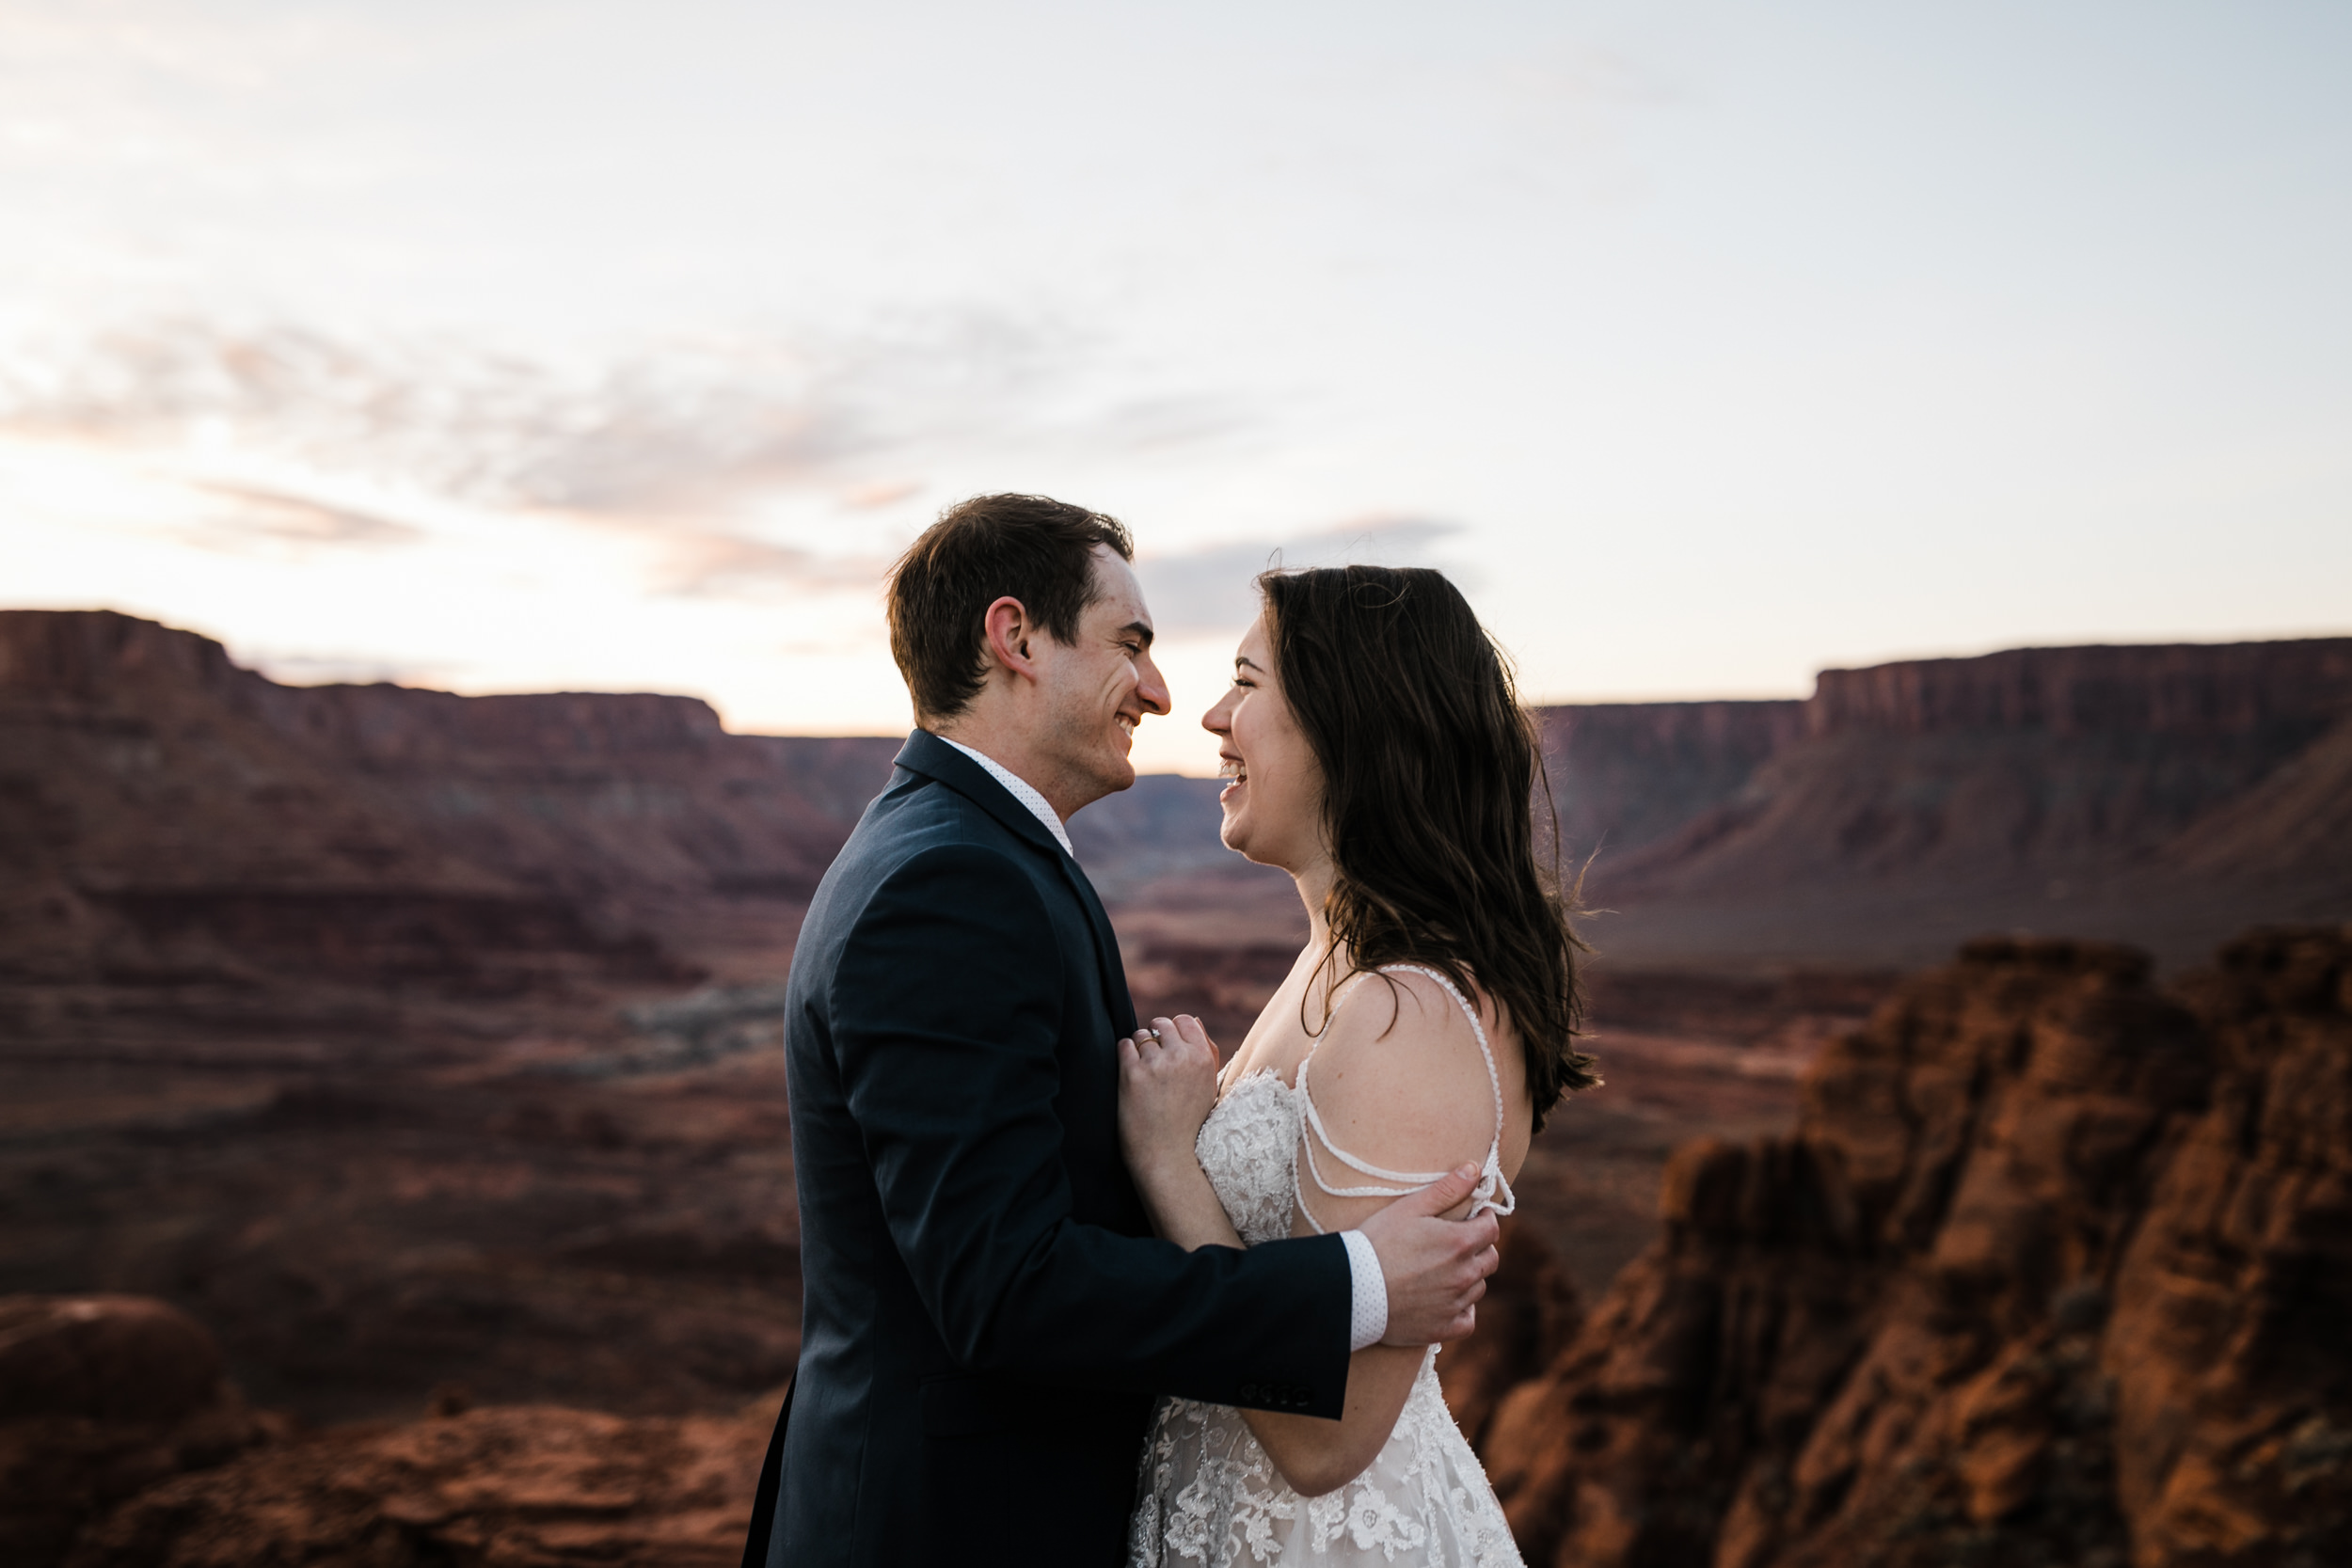 Our couples who elope are always filled with so much joy. This morning in Moab was perfect for them.